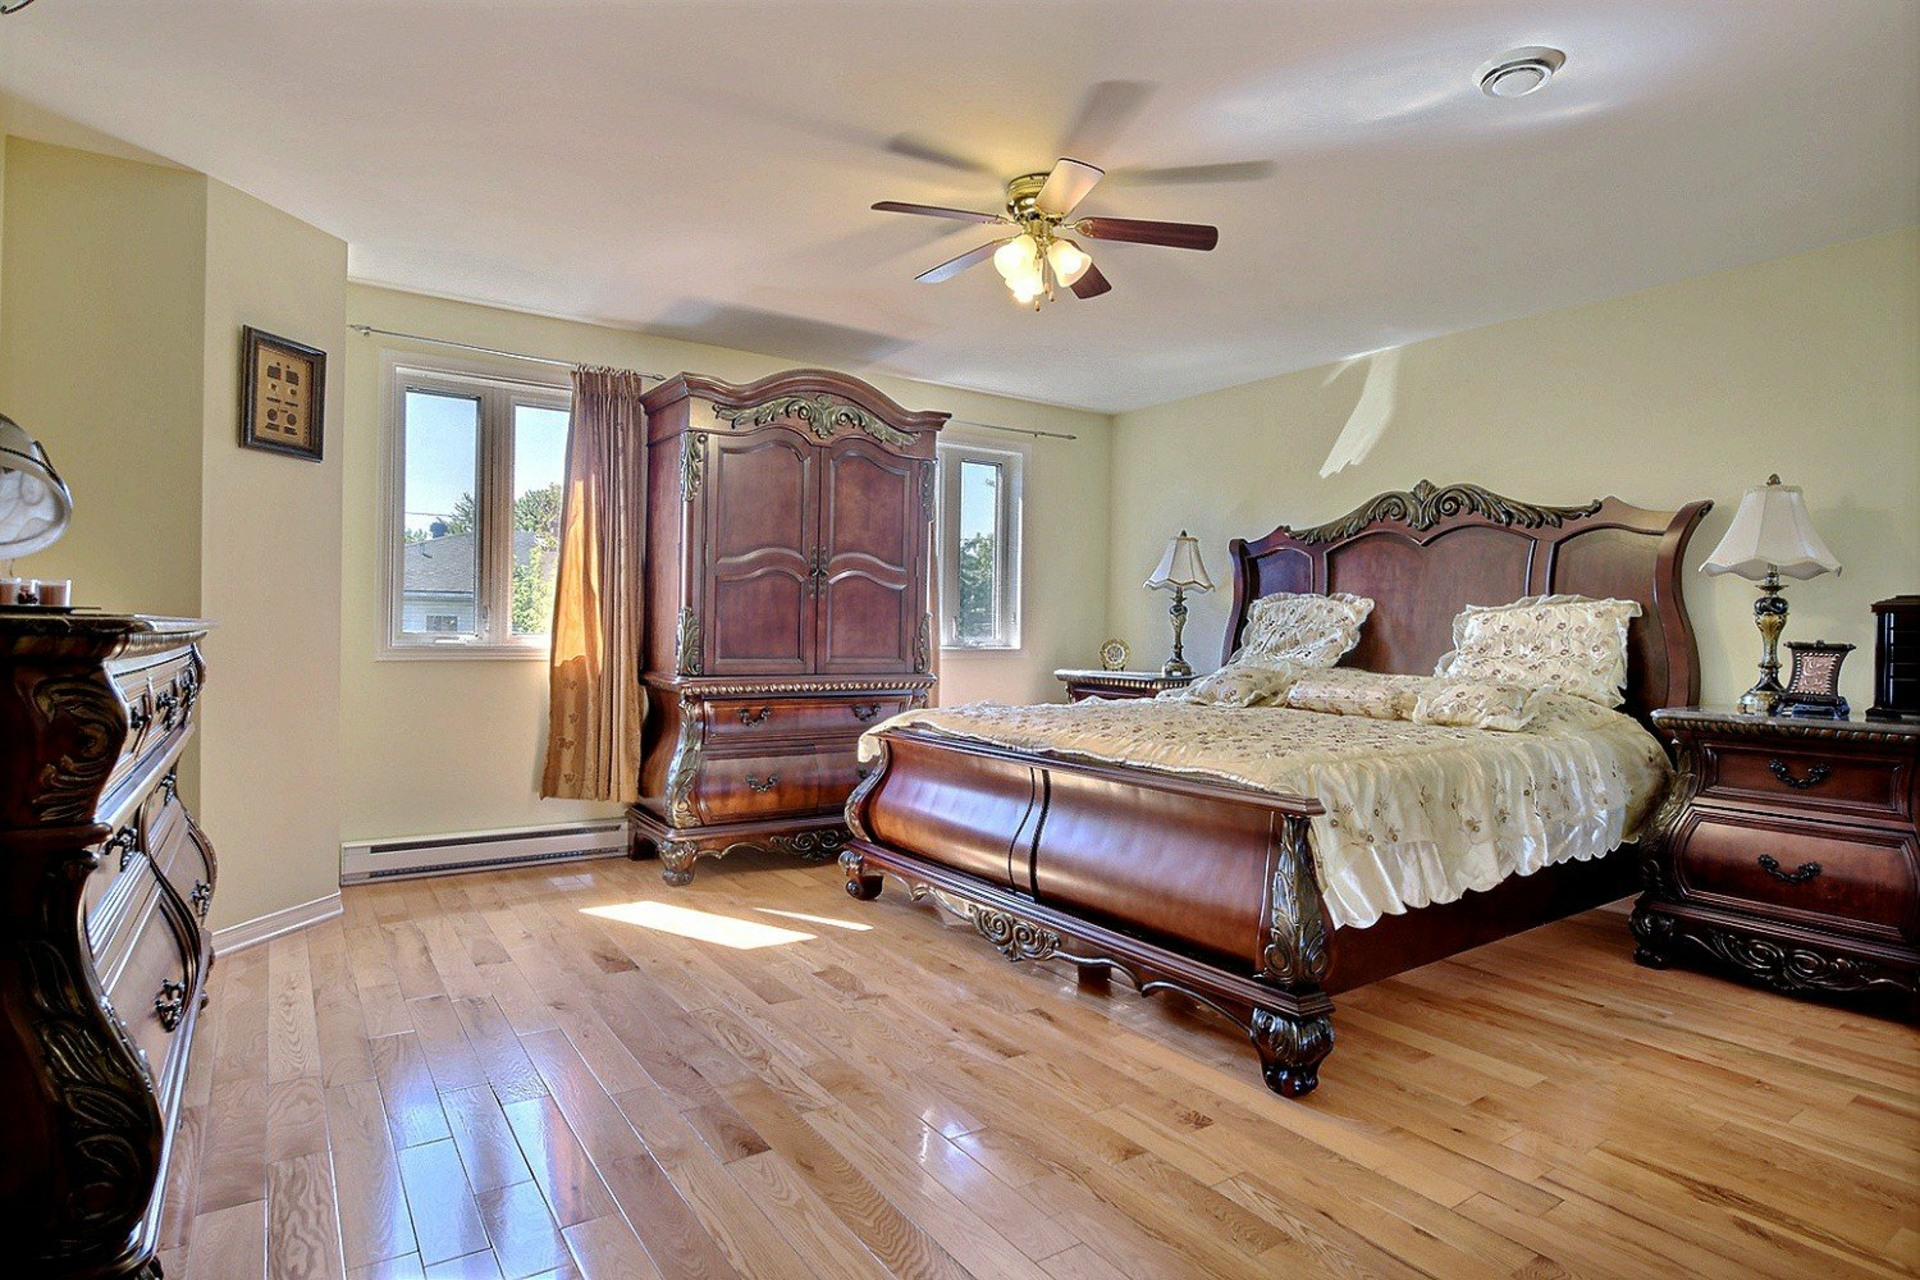 image 10 - House For sale Brossard - 6 rooms